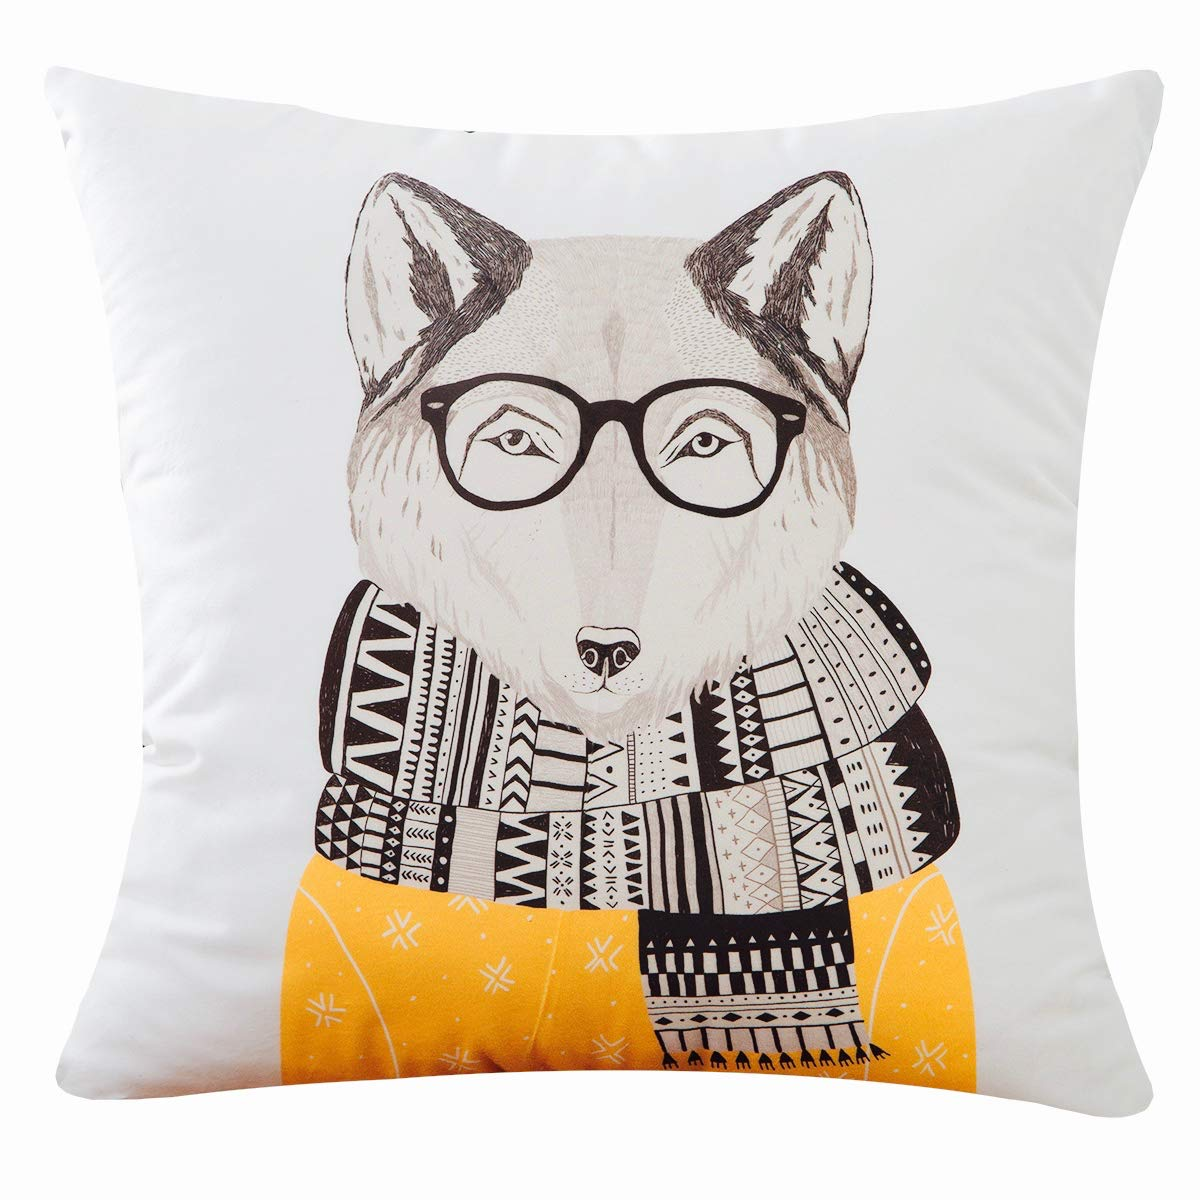 Black and White Decorative Throw Pillows Case for Couch Sofa Bed Square Cushion Cover 18 /×18 Inch PANDICORN Cuddly Velvet Minimal Style Cactus Throw Pillow Covers